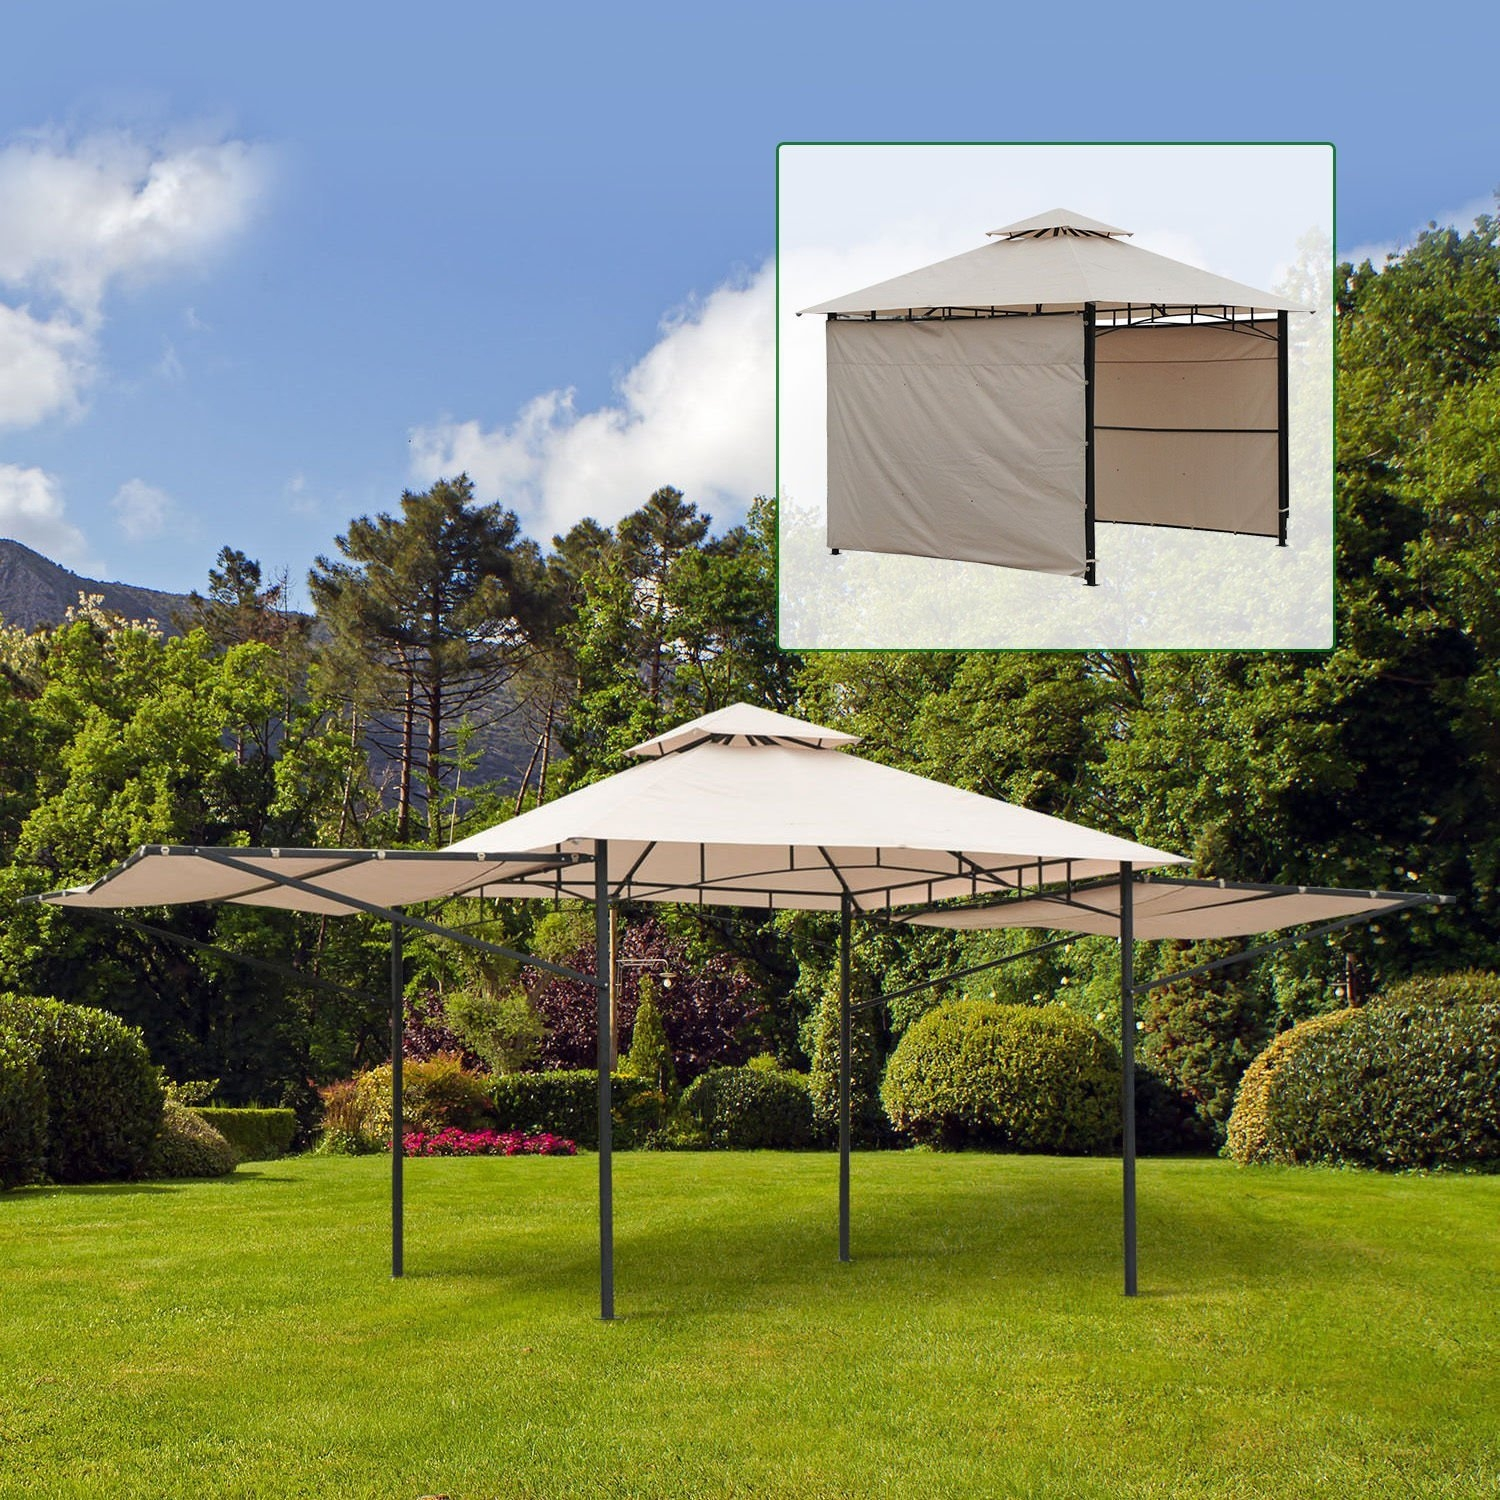 New MTN-G10'x10' Patio Gazebo Outdoor Garden Canopy Tent Sun Shade Shelter w  Extension by MTN Gearsmith